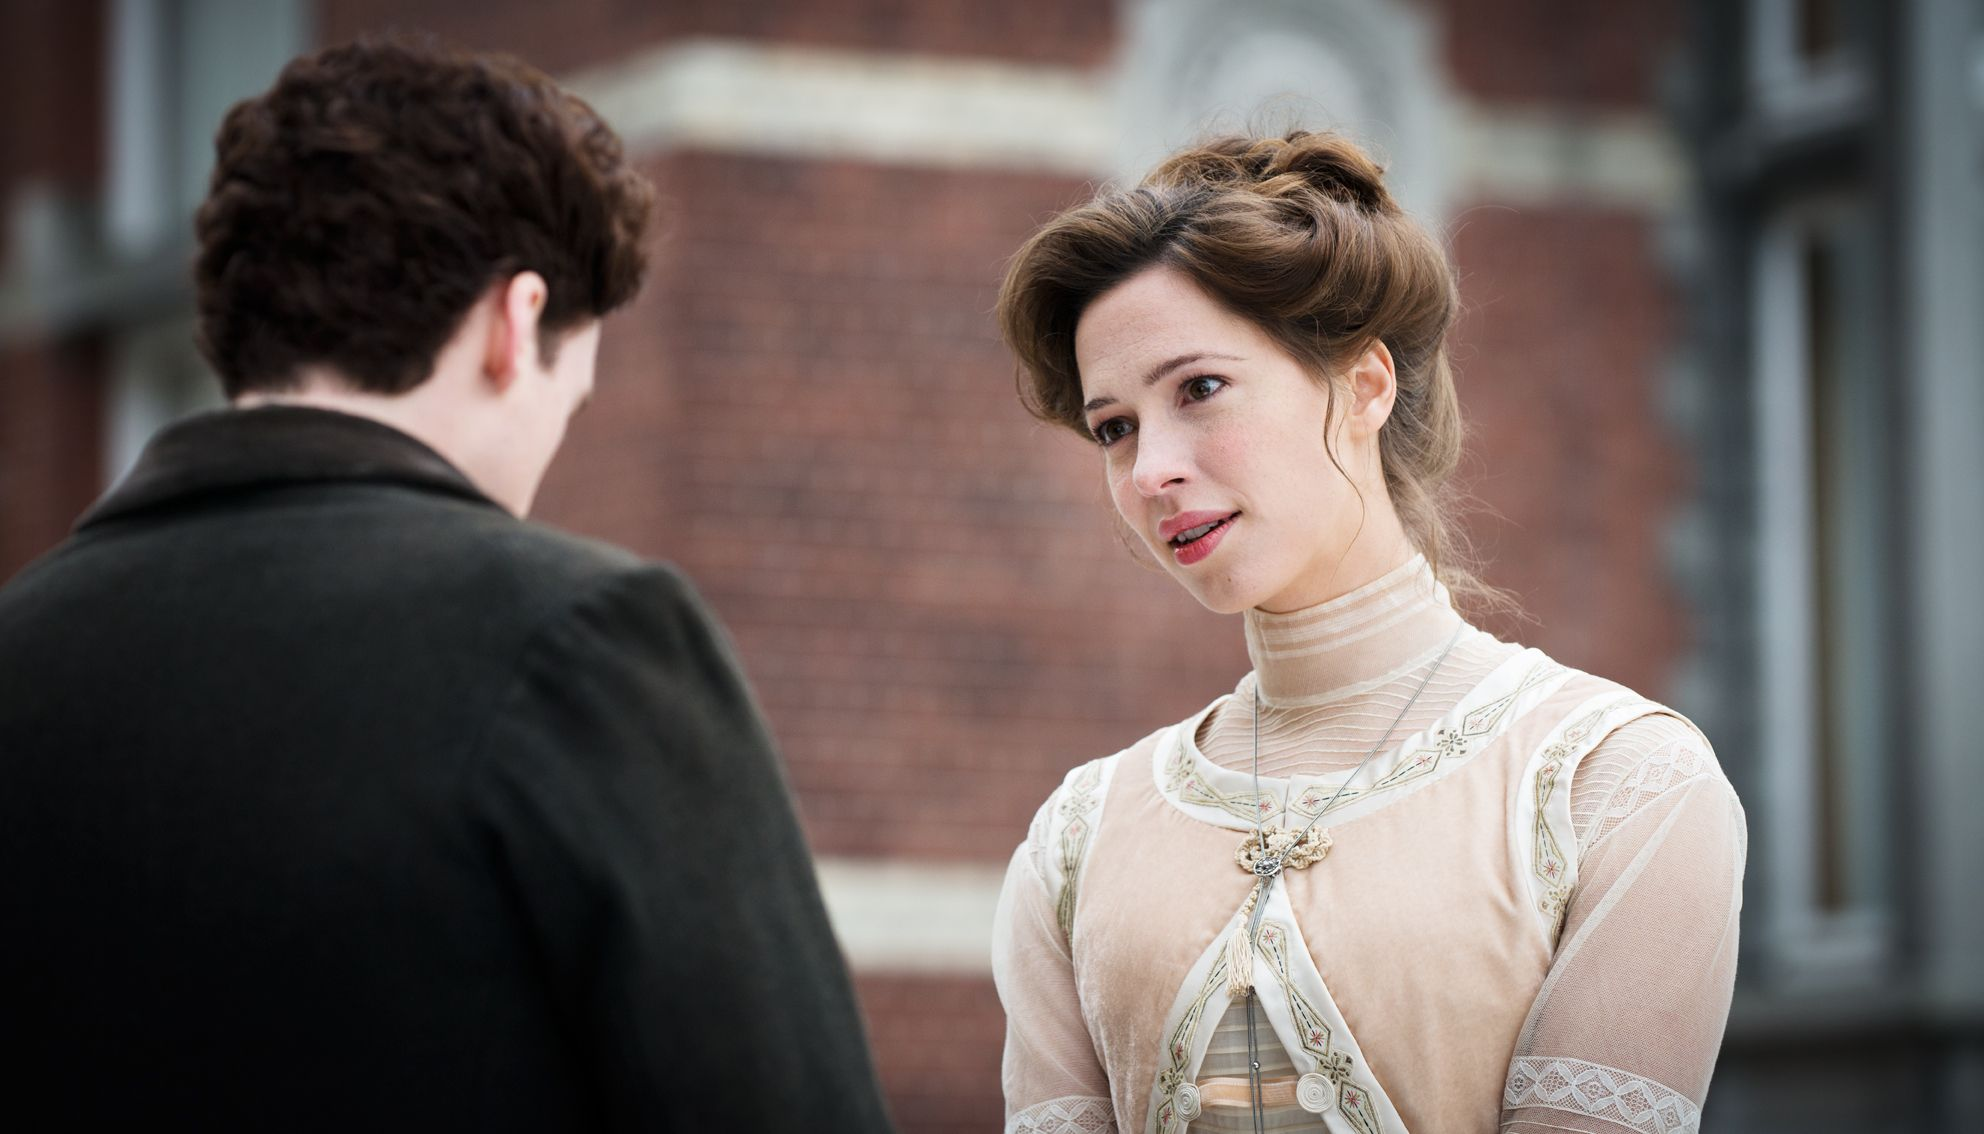 a promise trailer rebecca hall and richard madden fall in